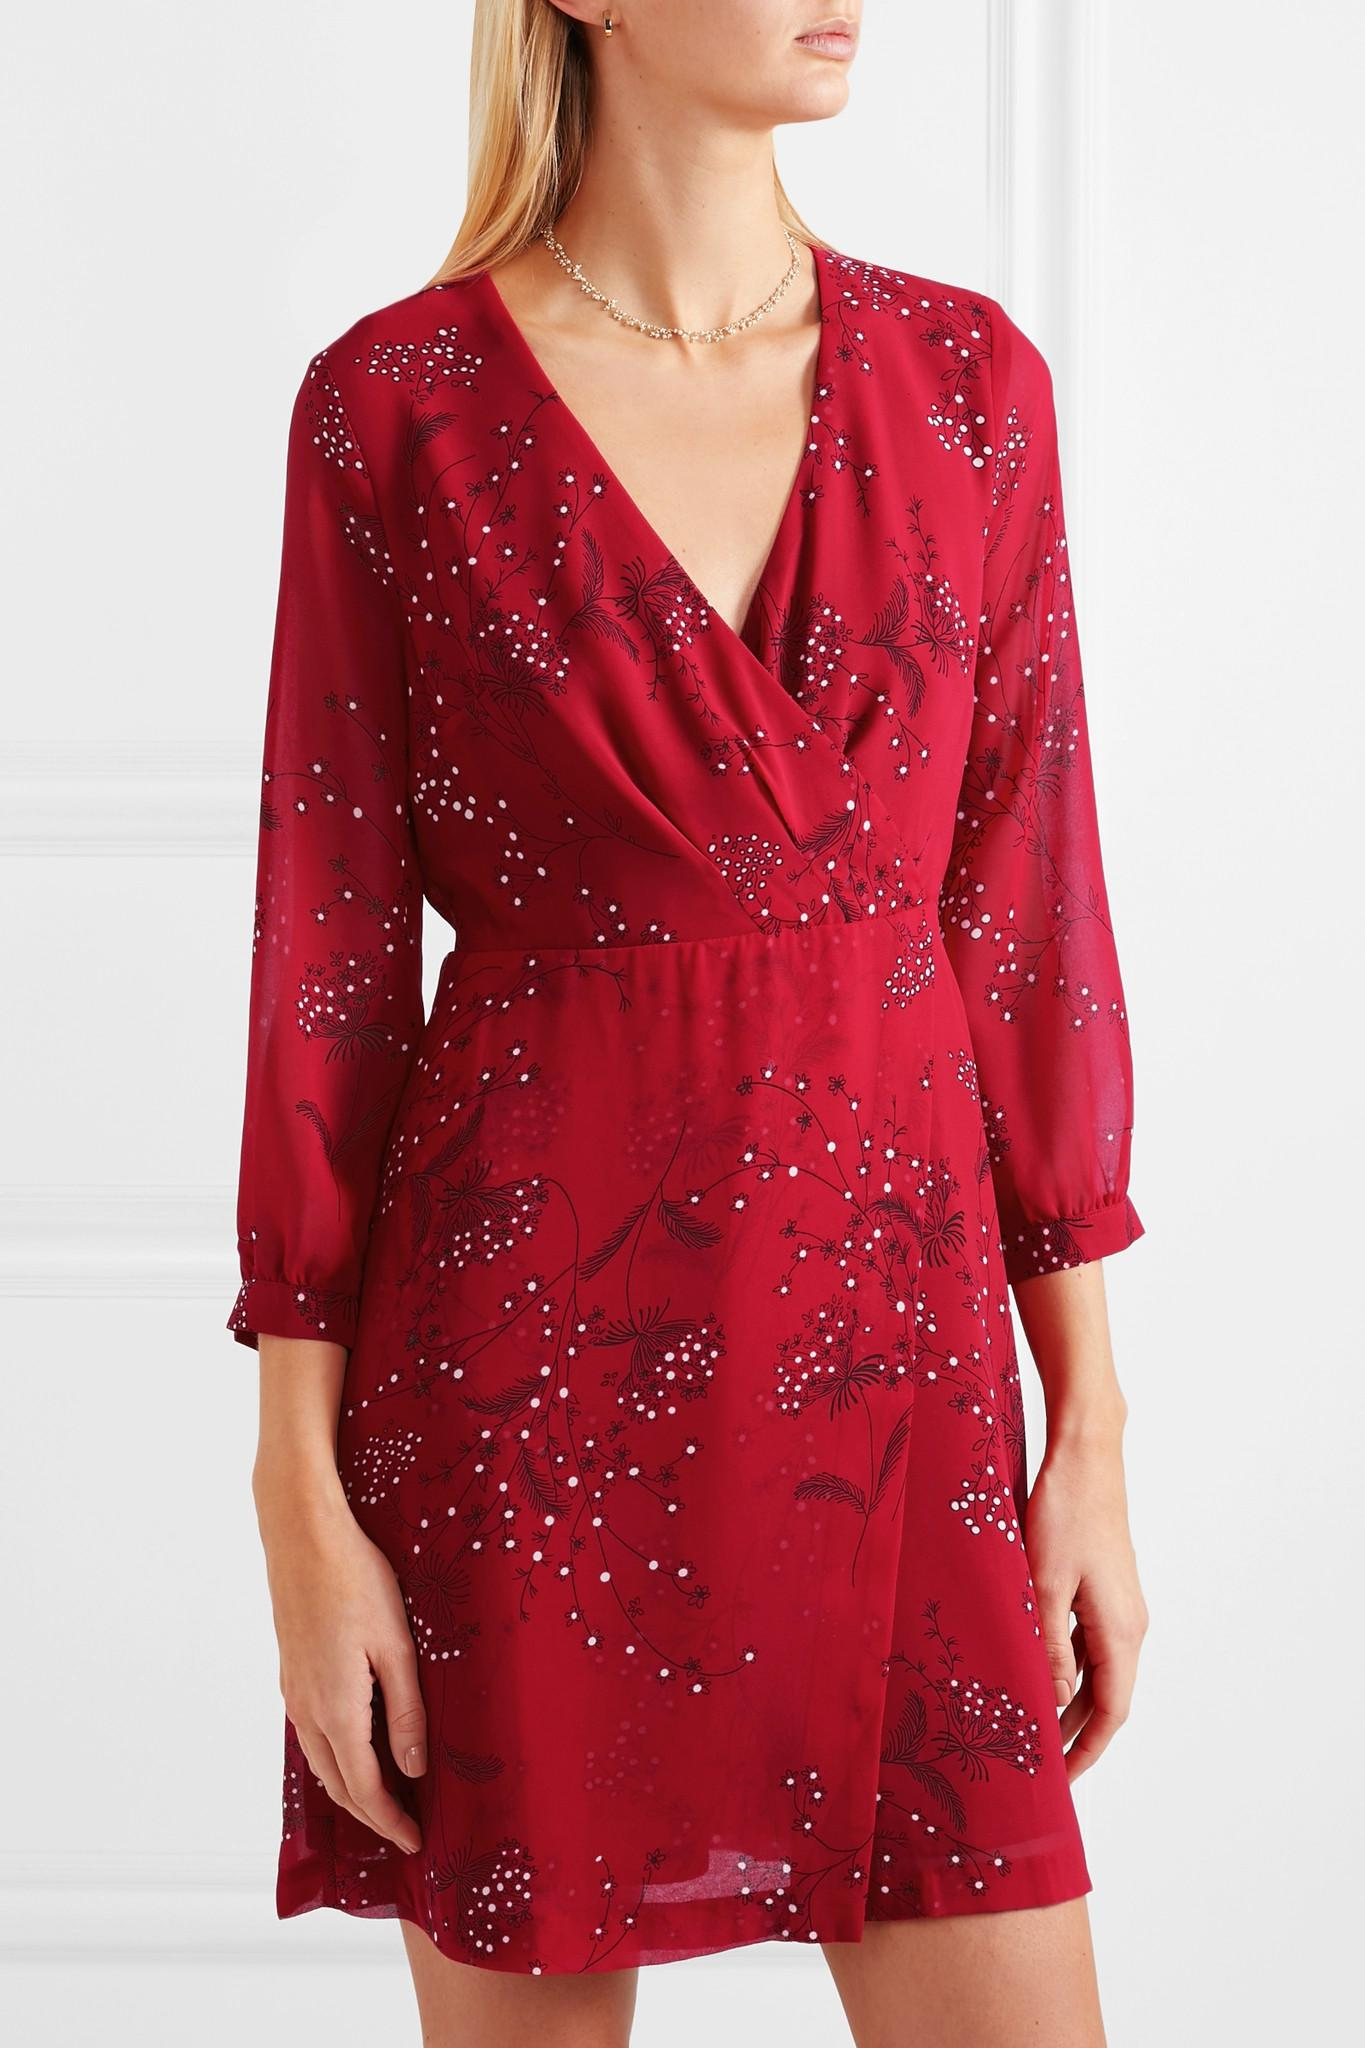 49f1e3030b Madewell - Red Wrap-effect Floral-print Crepe De Chine Mini Dress - Lyst.  View fullscreen